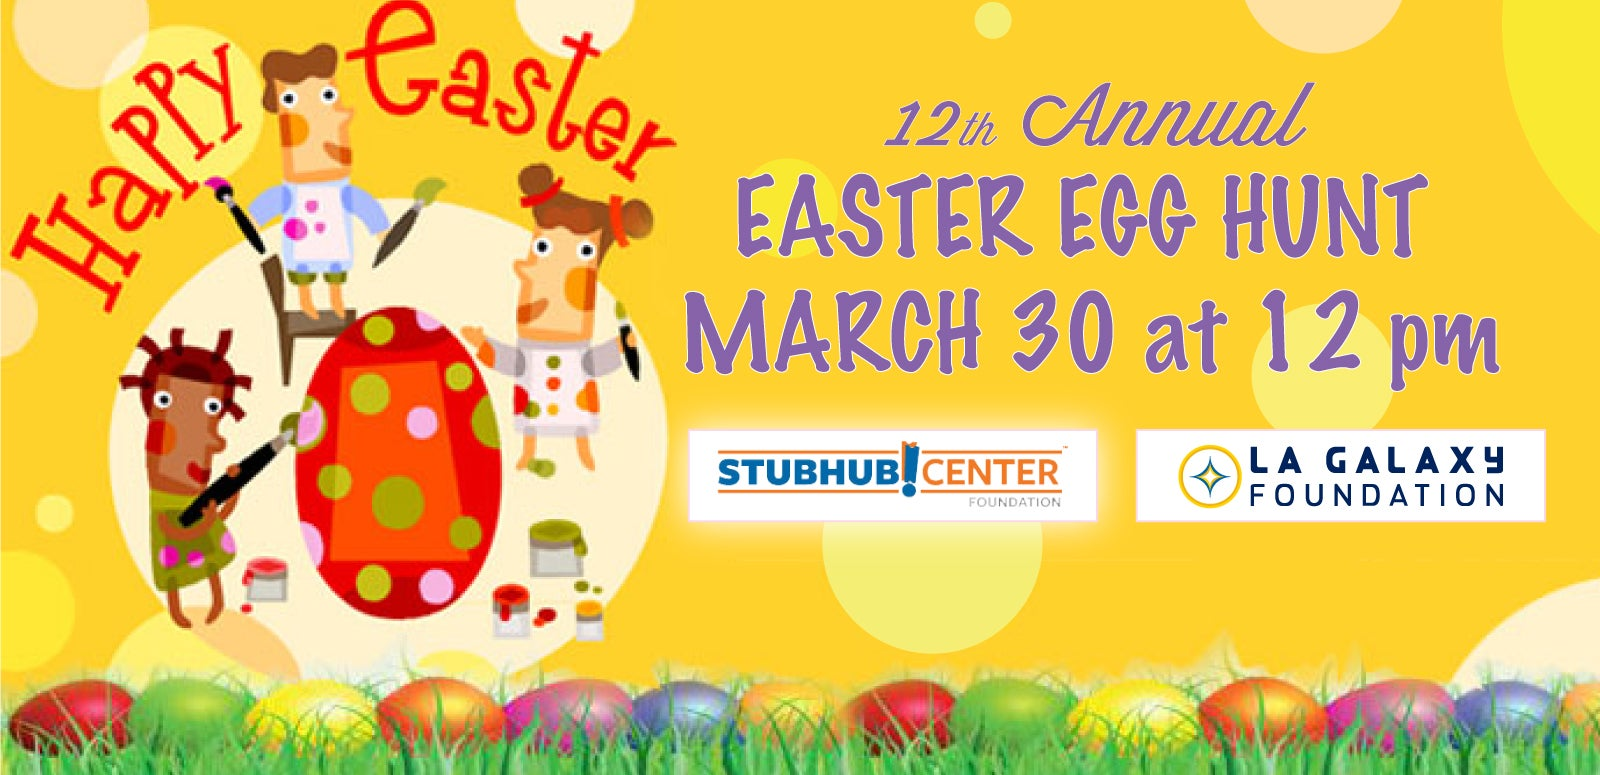 The StubHub Center Foundation and LA Galaxy Foundation 12th Annual Easter Egg Hunt